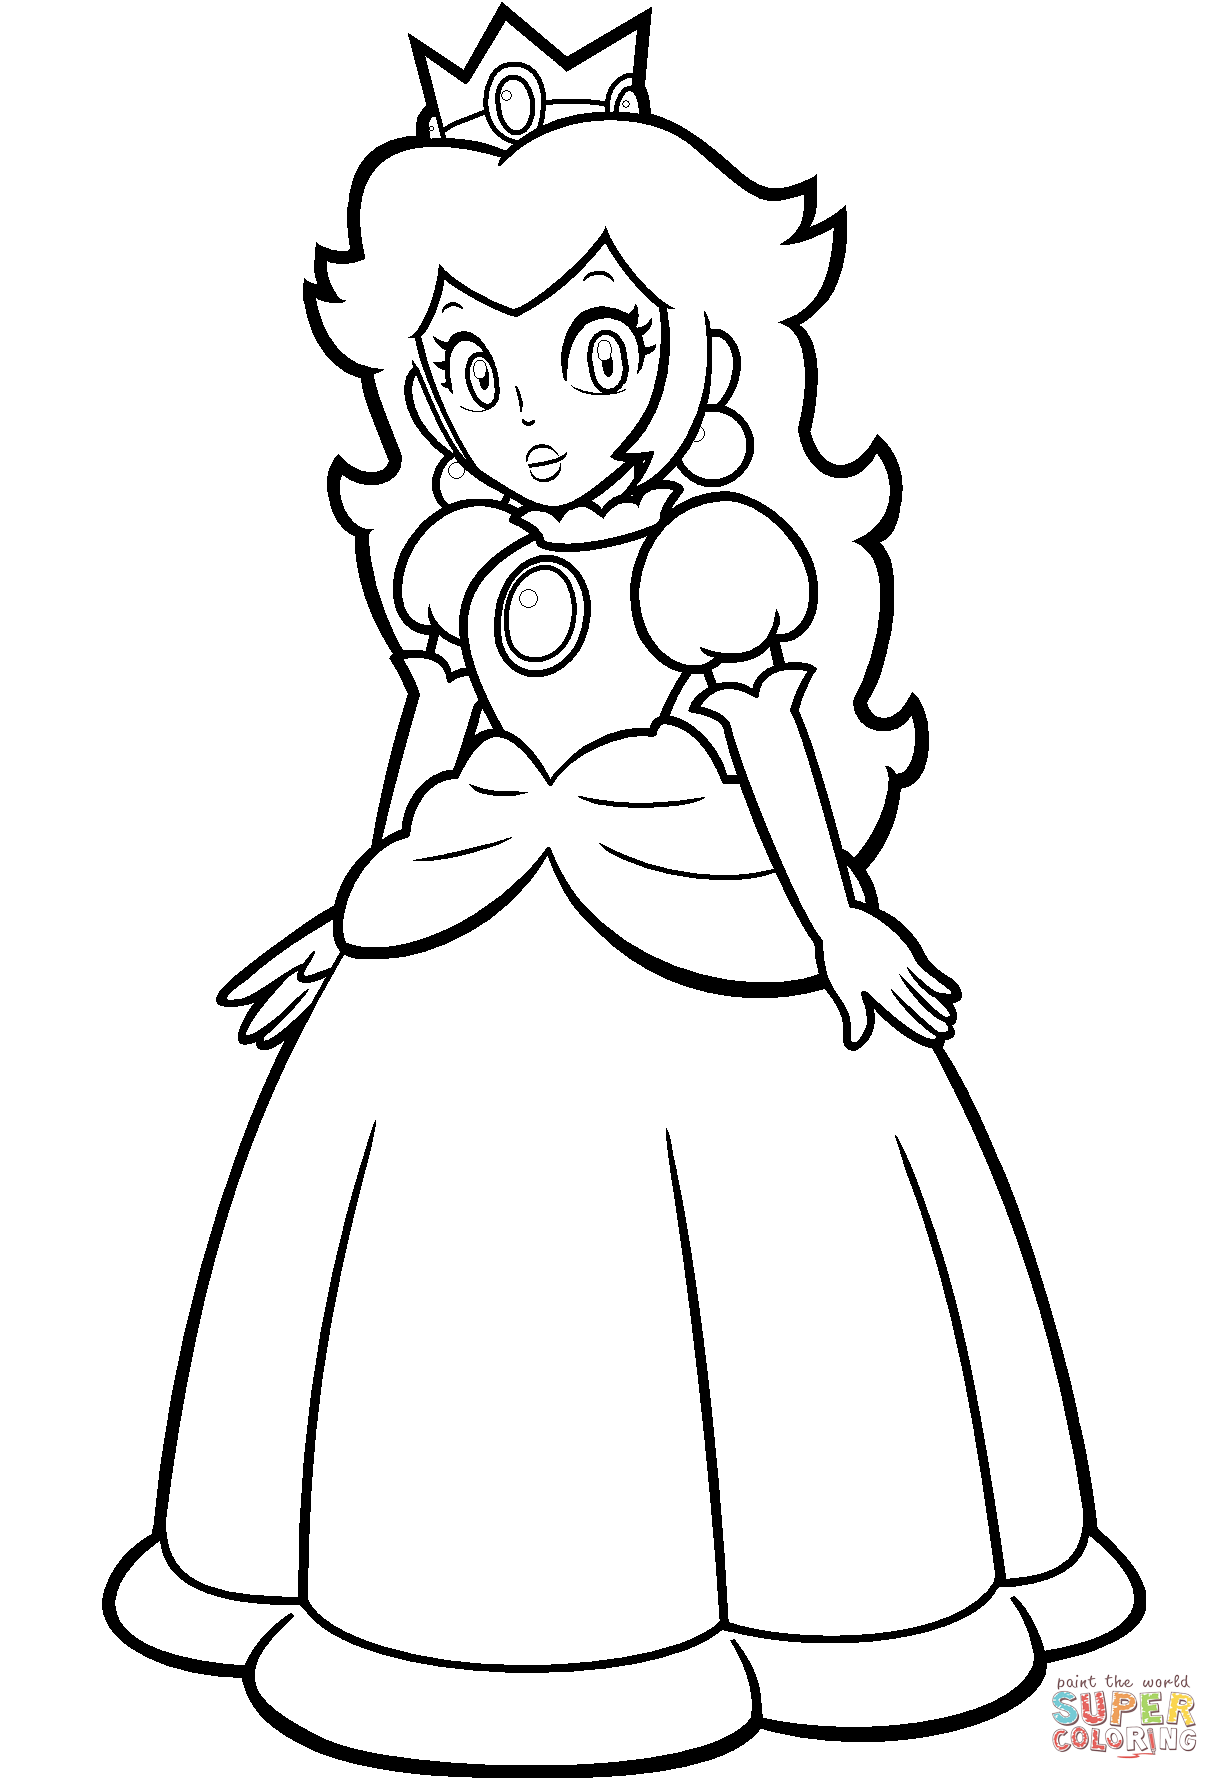 princess peach mario coloring pages mario and peach lines by smashsweetie on deviantart mario pages coloring princess peach